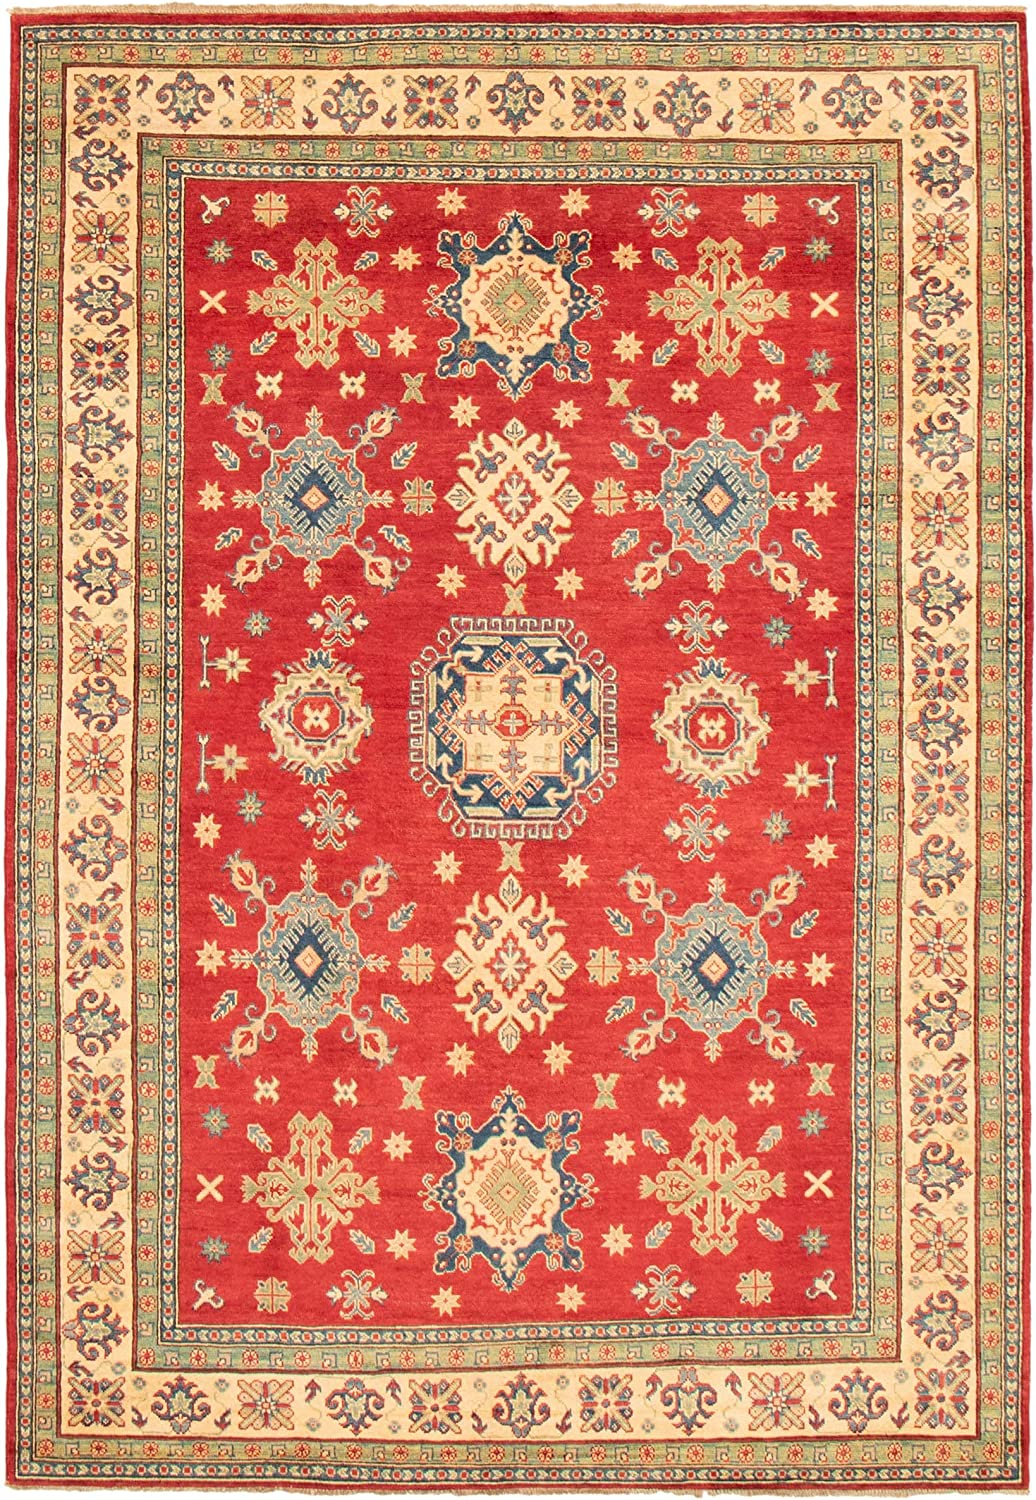 eCarpet Gallery Large Superior Area Rug shopping Hand-K Living for Room Bedroom